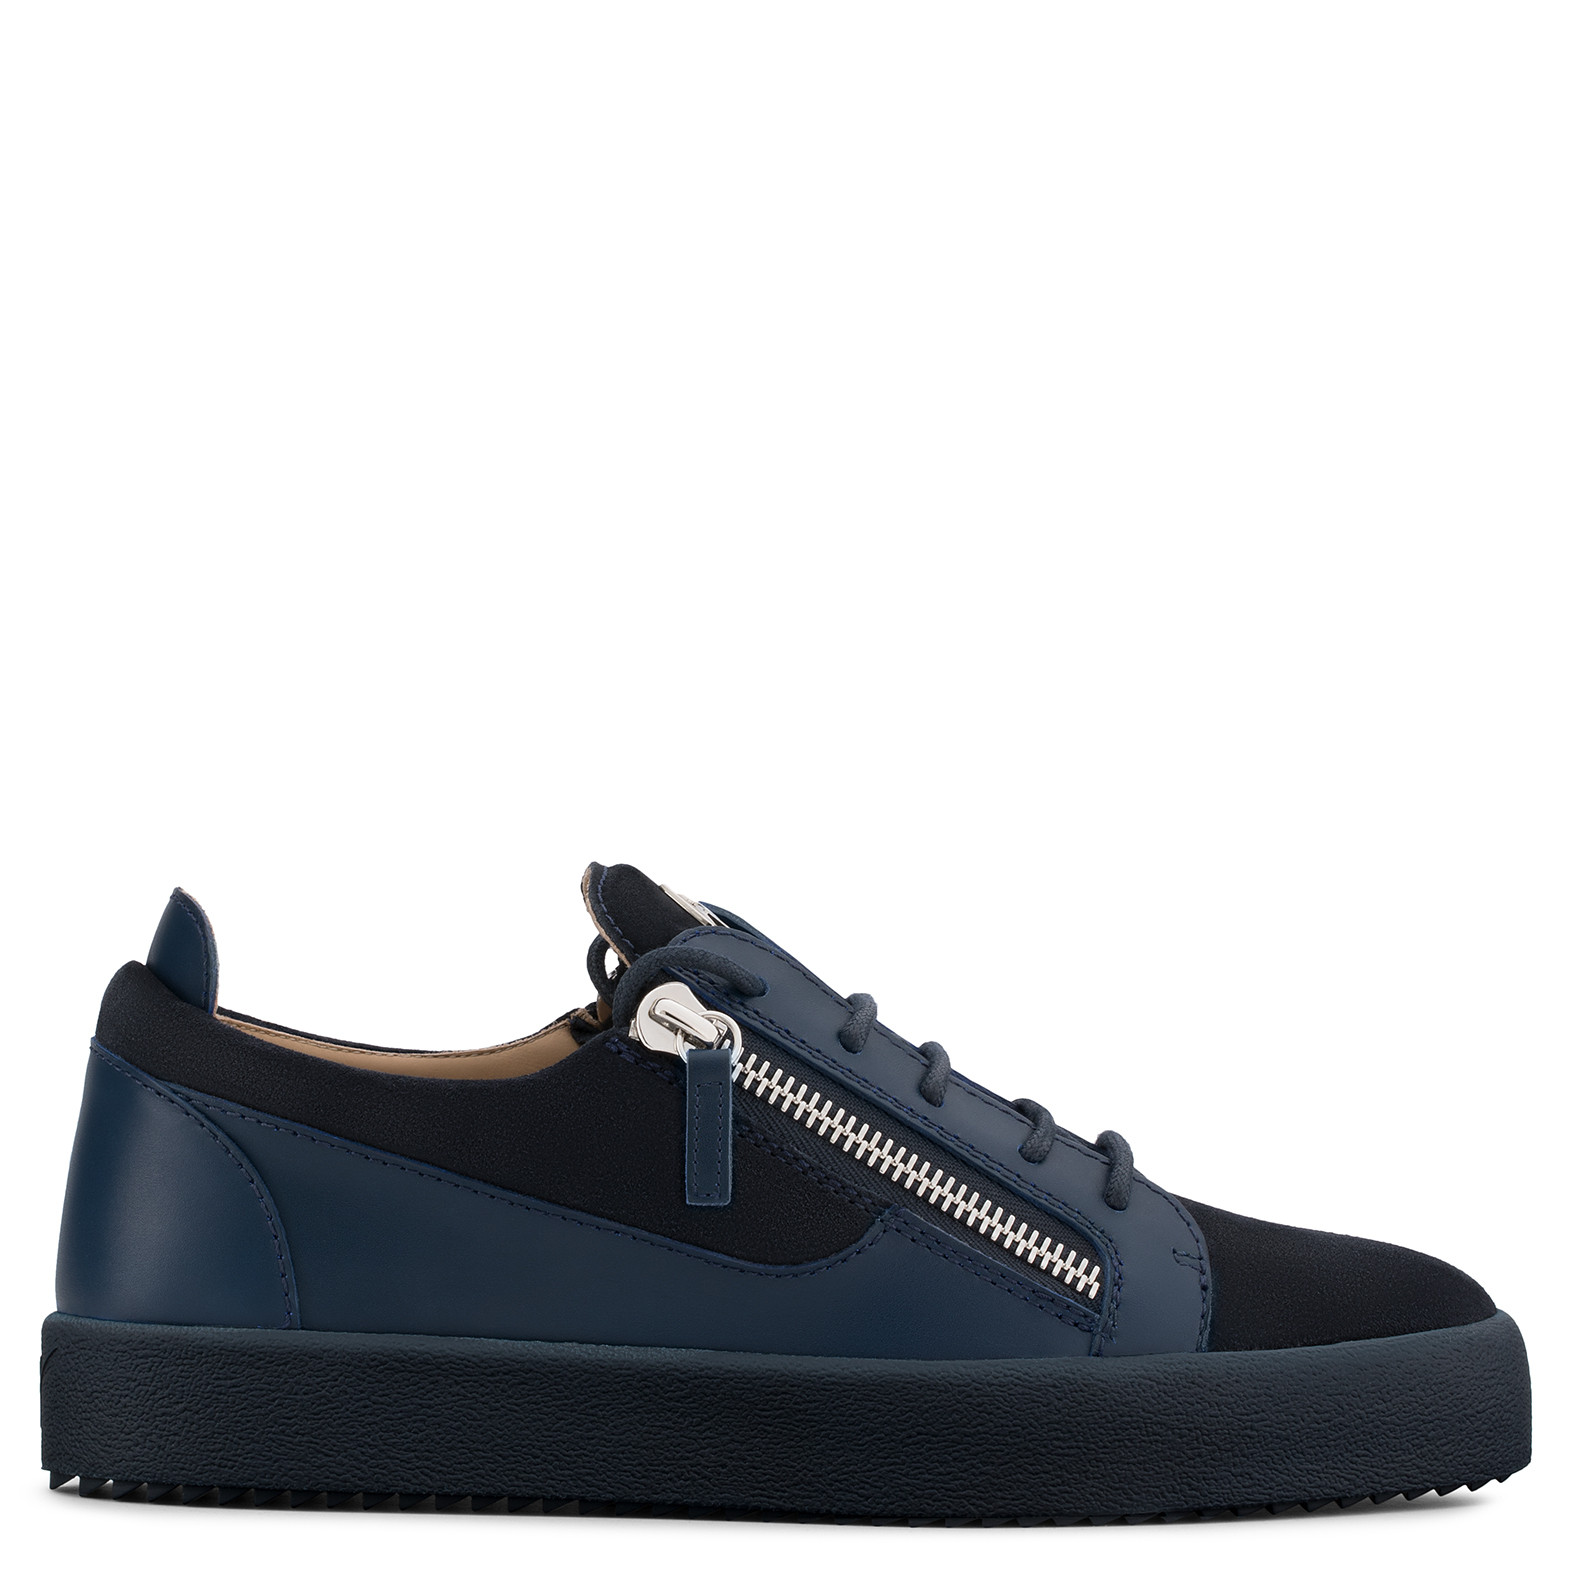 Giuseppe ZanottiBlue calf leather and white suede low-top DOUBLE CbSQ4O2jx